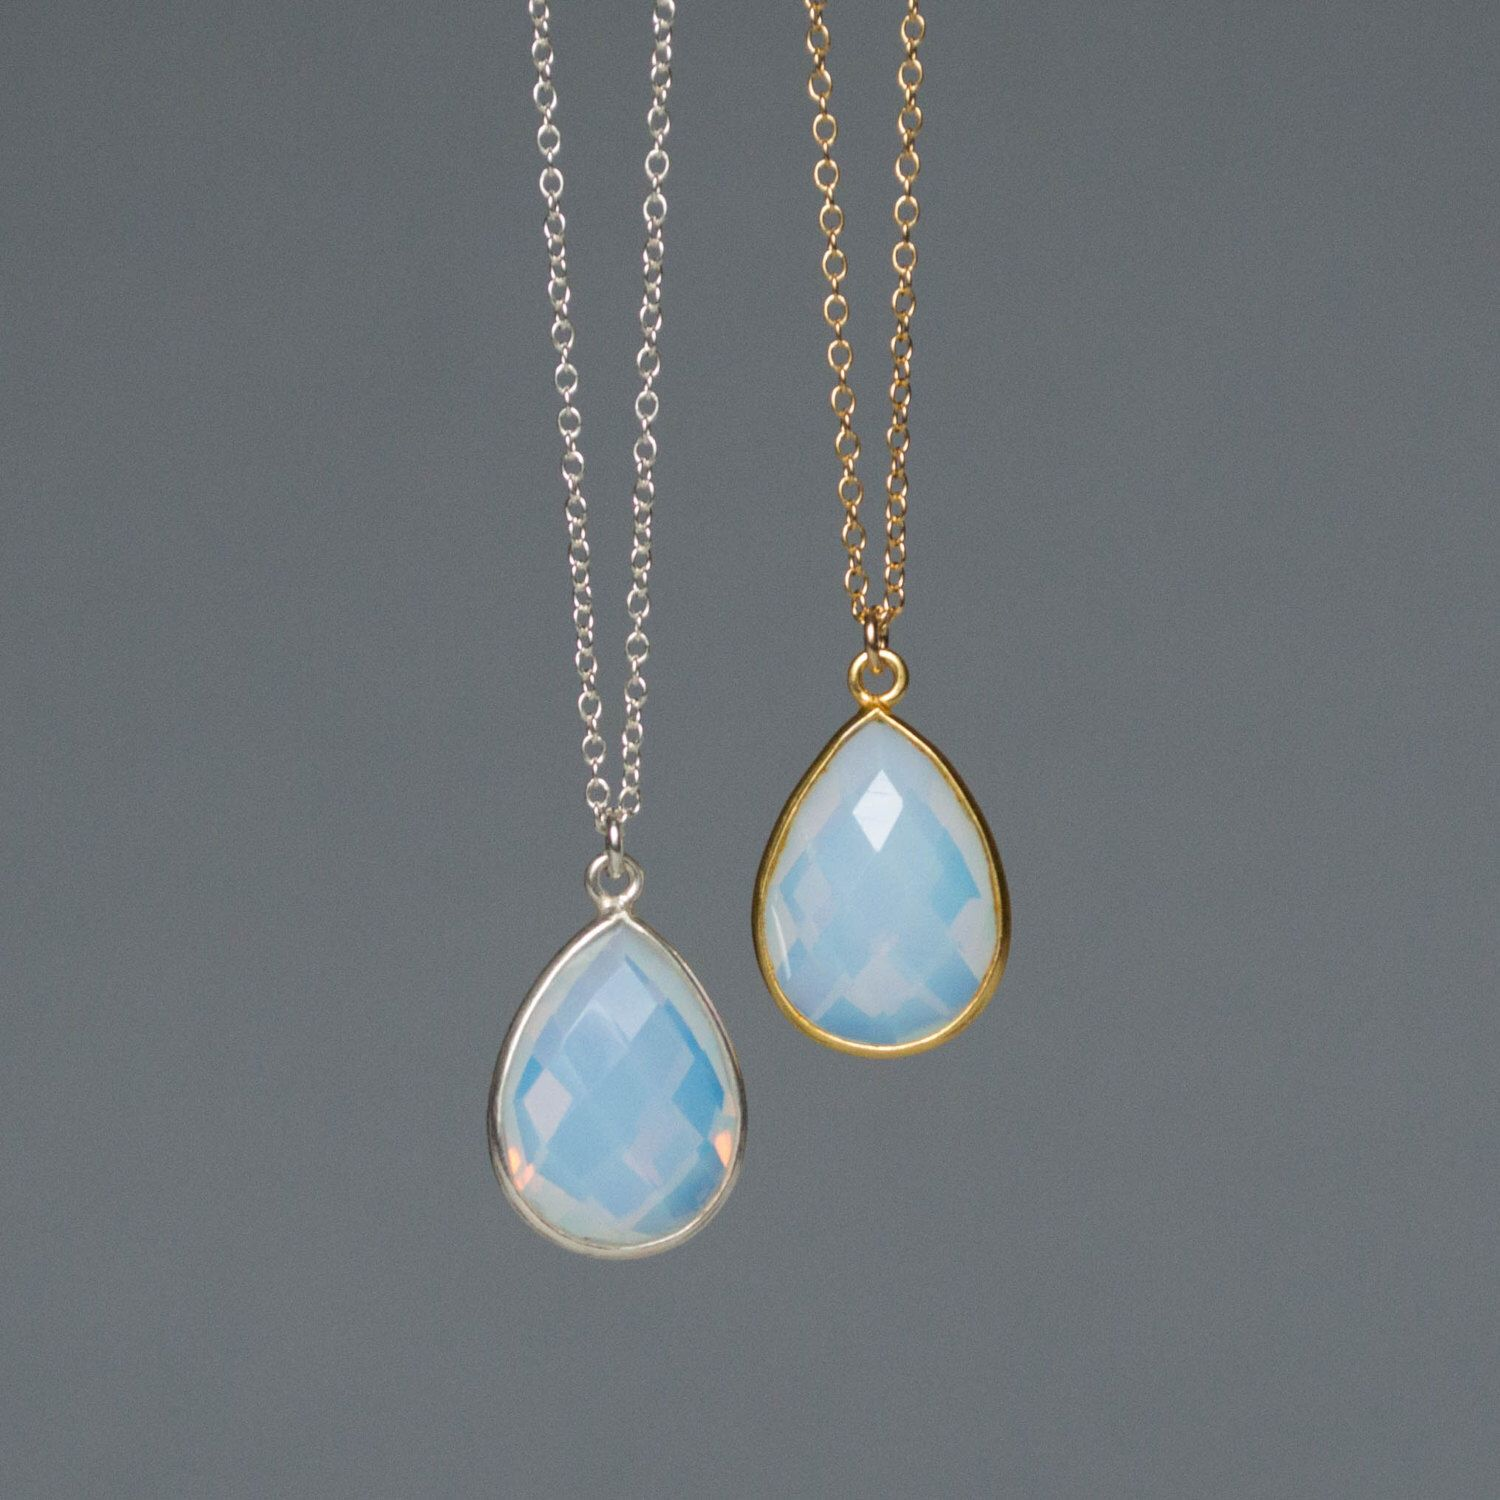 necklaces collections gems dainty products salt minimal necklace opalite city opal pendant